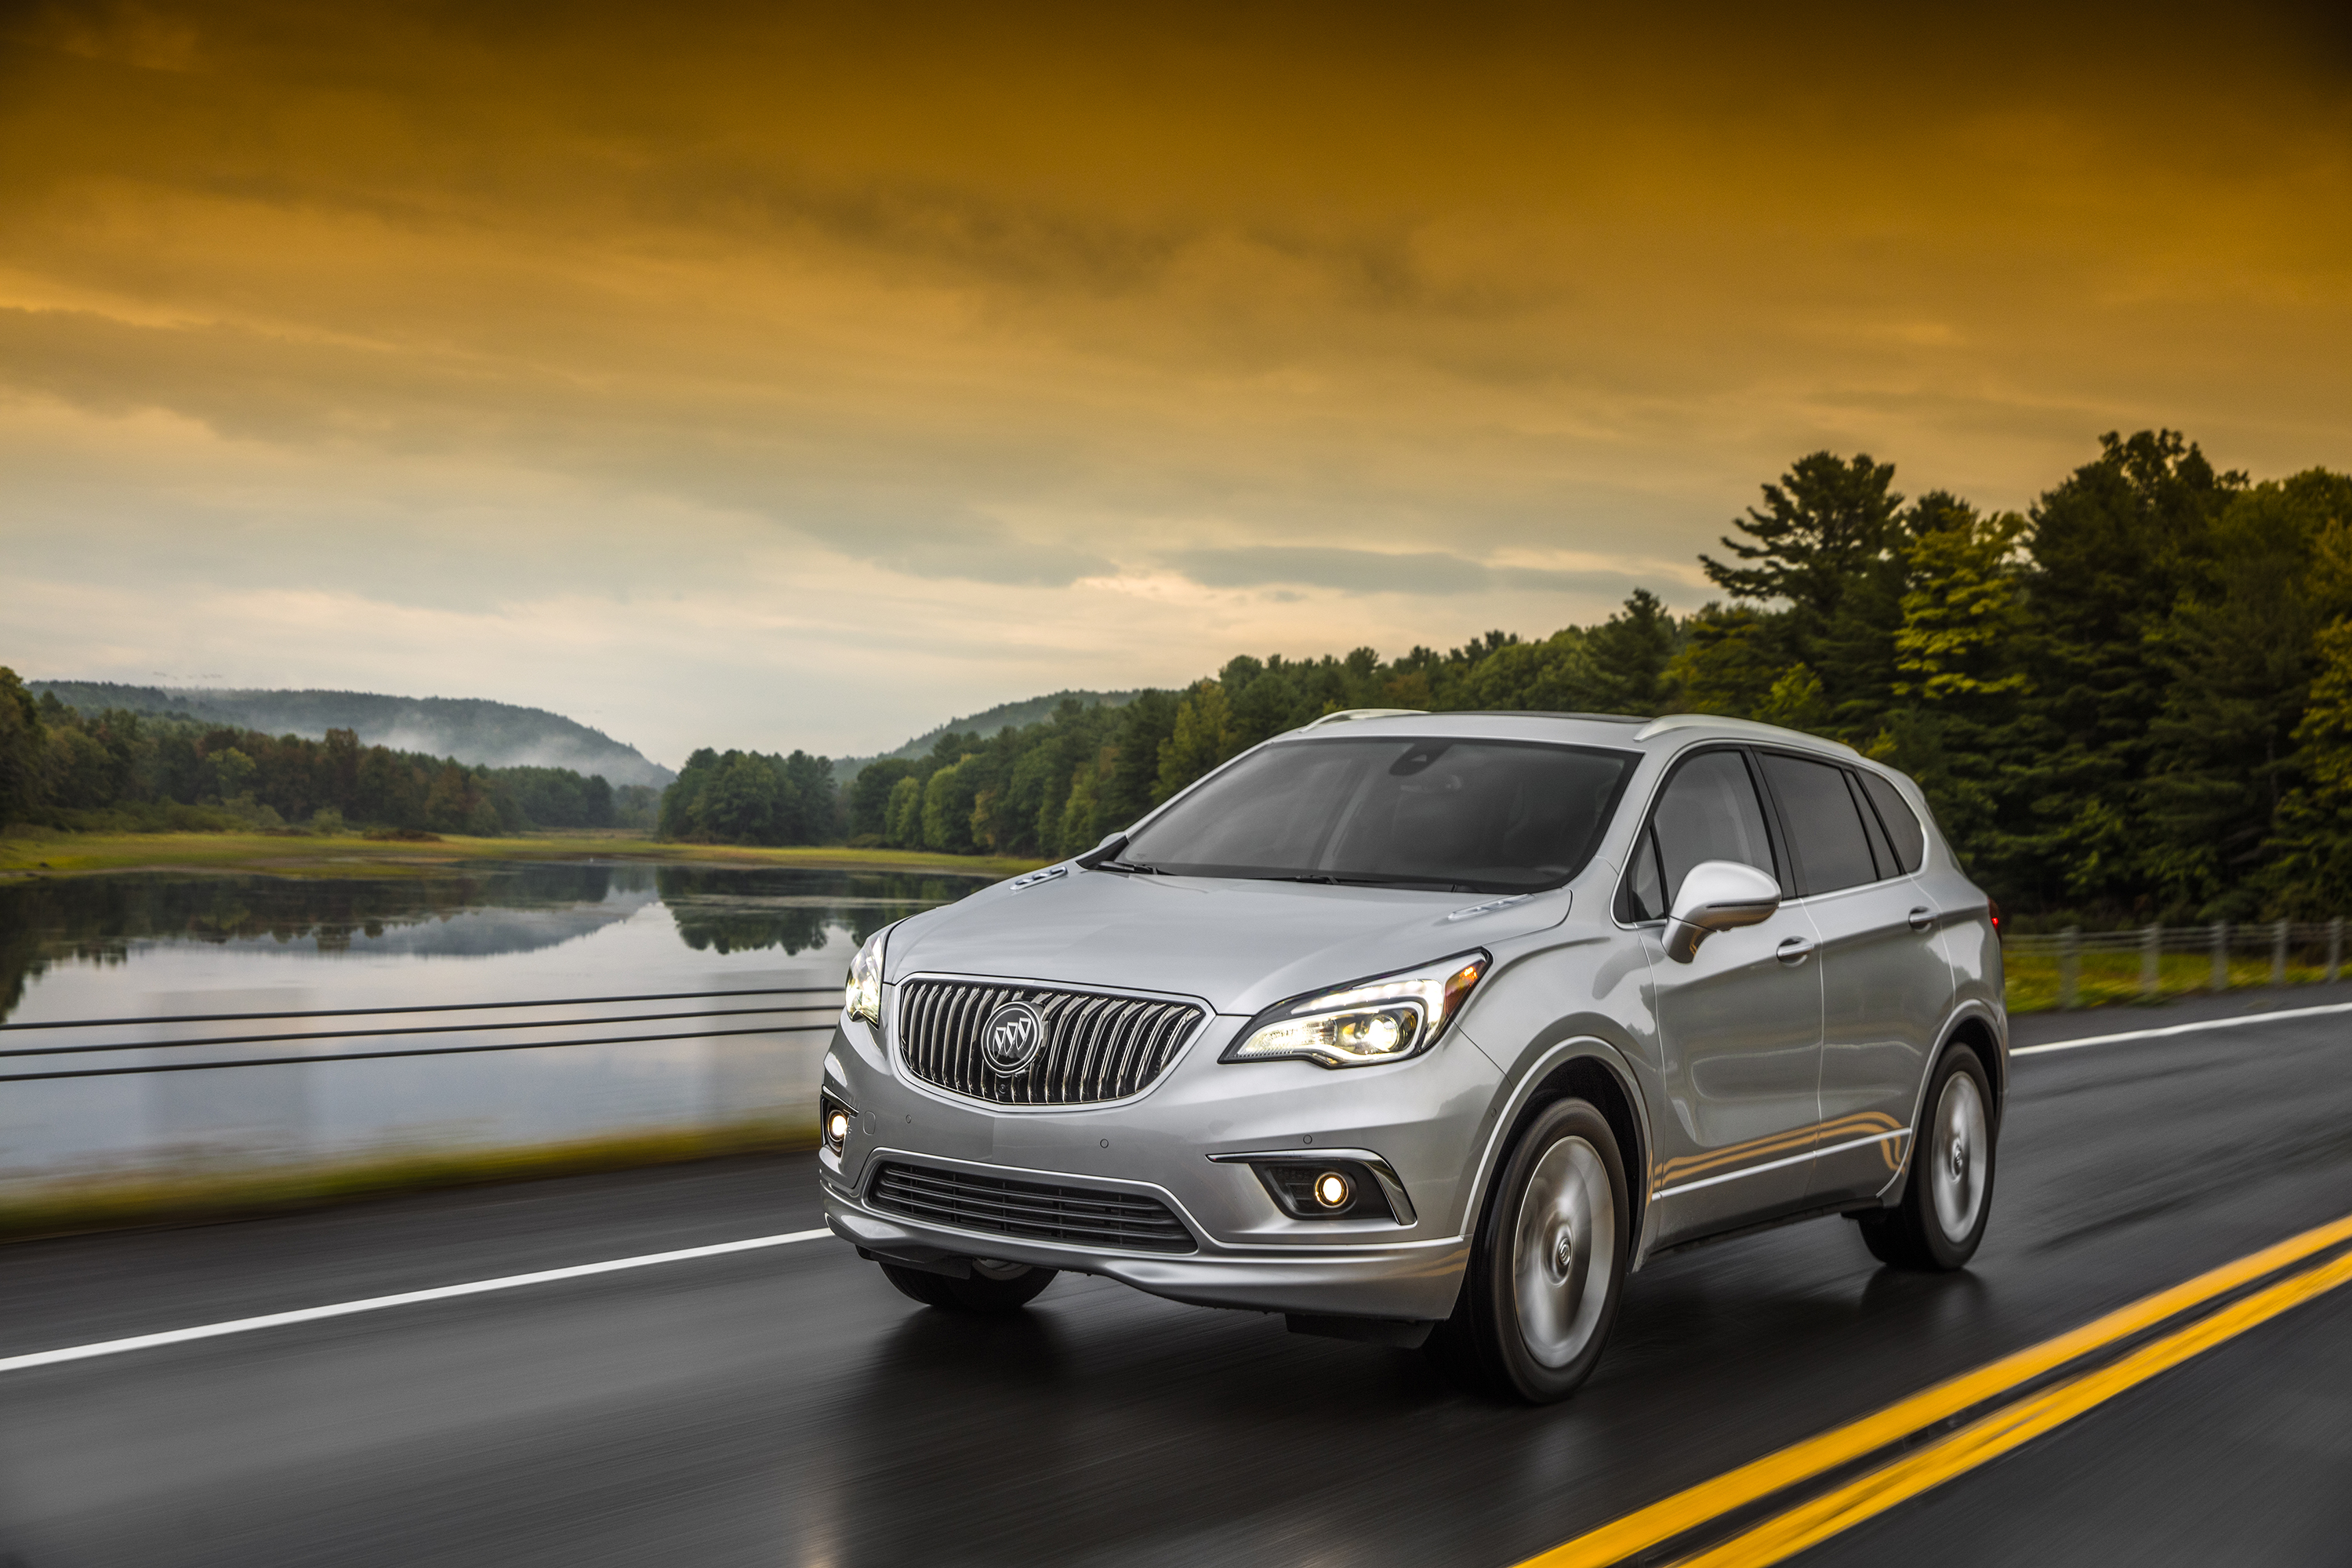 2017 Buick Envision Awd Earns 5 Star Overall Vehicle Score For Safety Rating By Nhtsa